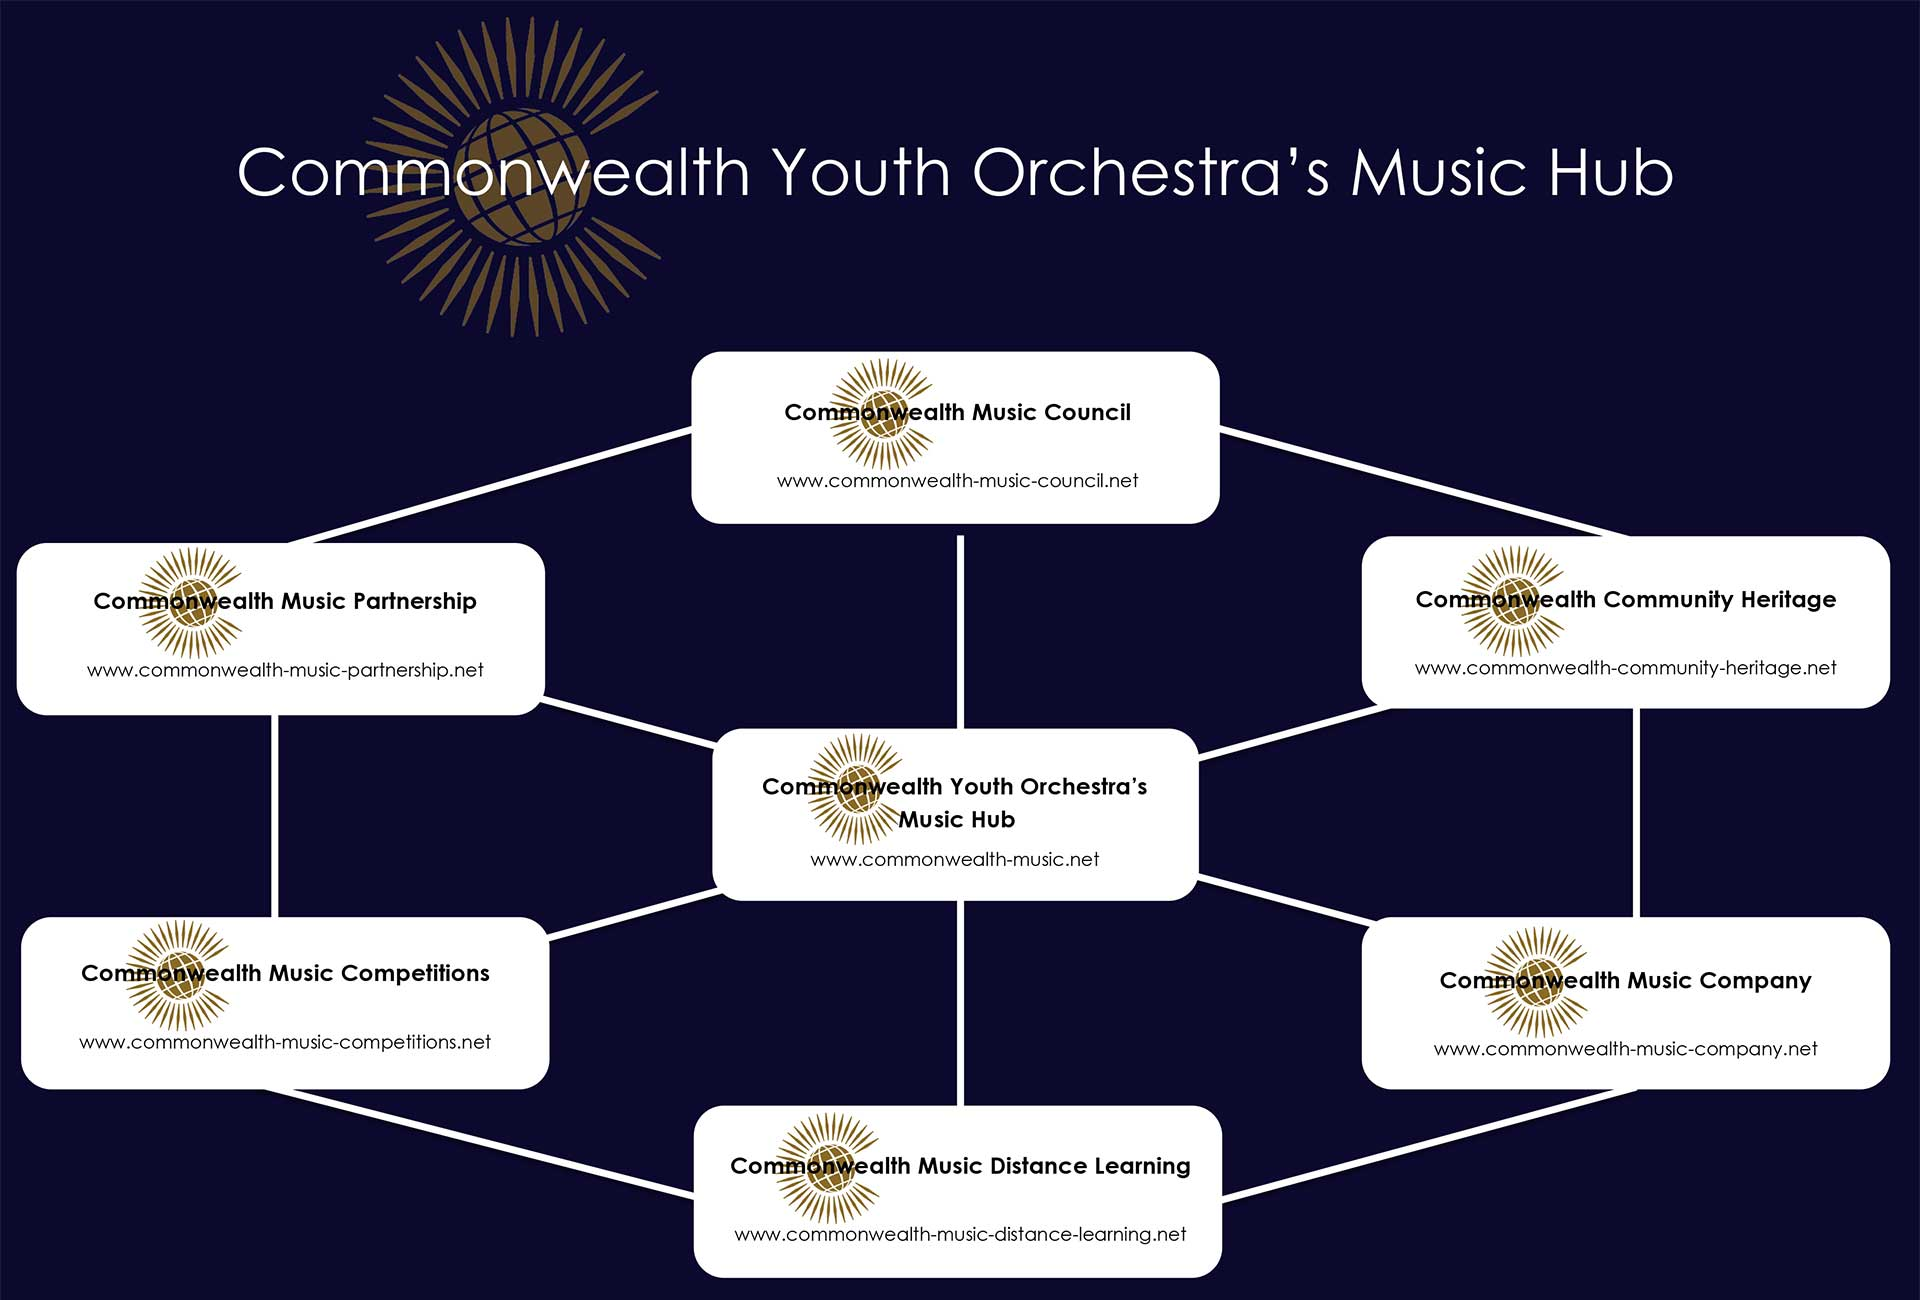 Commonwealth Youth Orchestra Music Hub